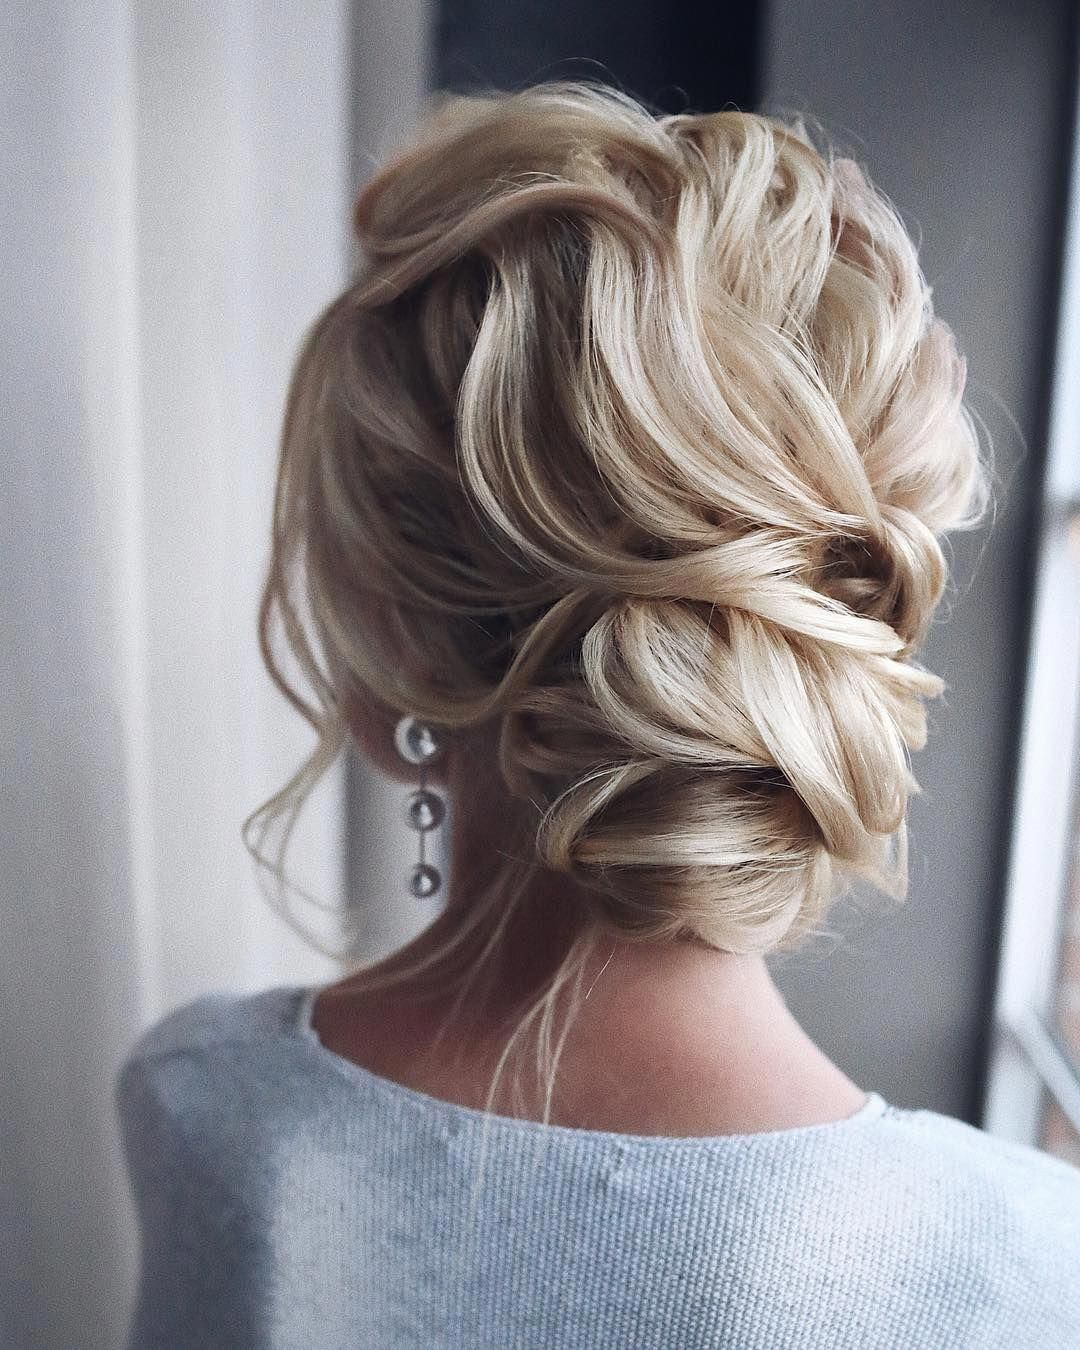 10 updos for mid-length hair – totally textured #hairstyles | Hair styles, Summer  wedding hairstyles, Bridal hair updo